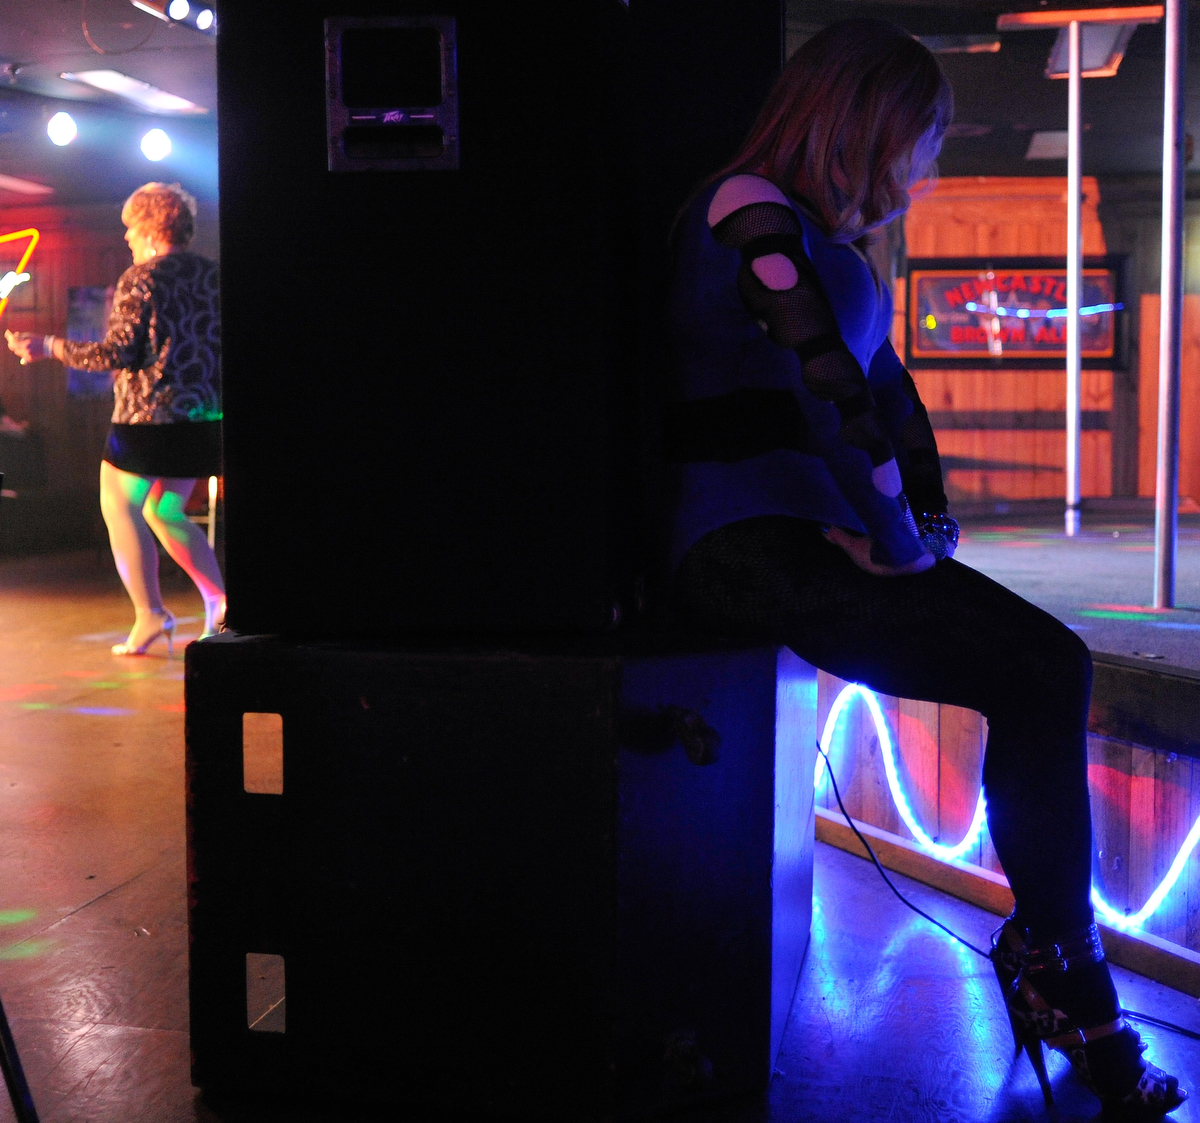 Anita Richcock, right, waits behind a set of speakers while Sasha Stephens performs during the Gender Fuzions Cabaret at Fuzions Bar in Monroe, Ga., Friday, Jan. 10, 2014. (AJ Reynolds/Staff, @ajreynoldsphoto)